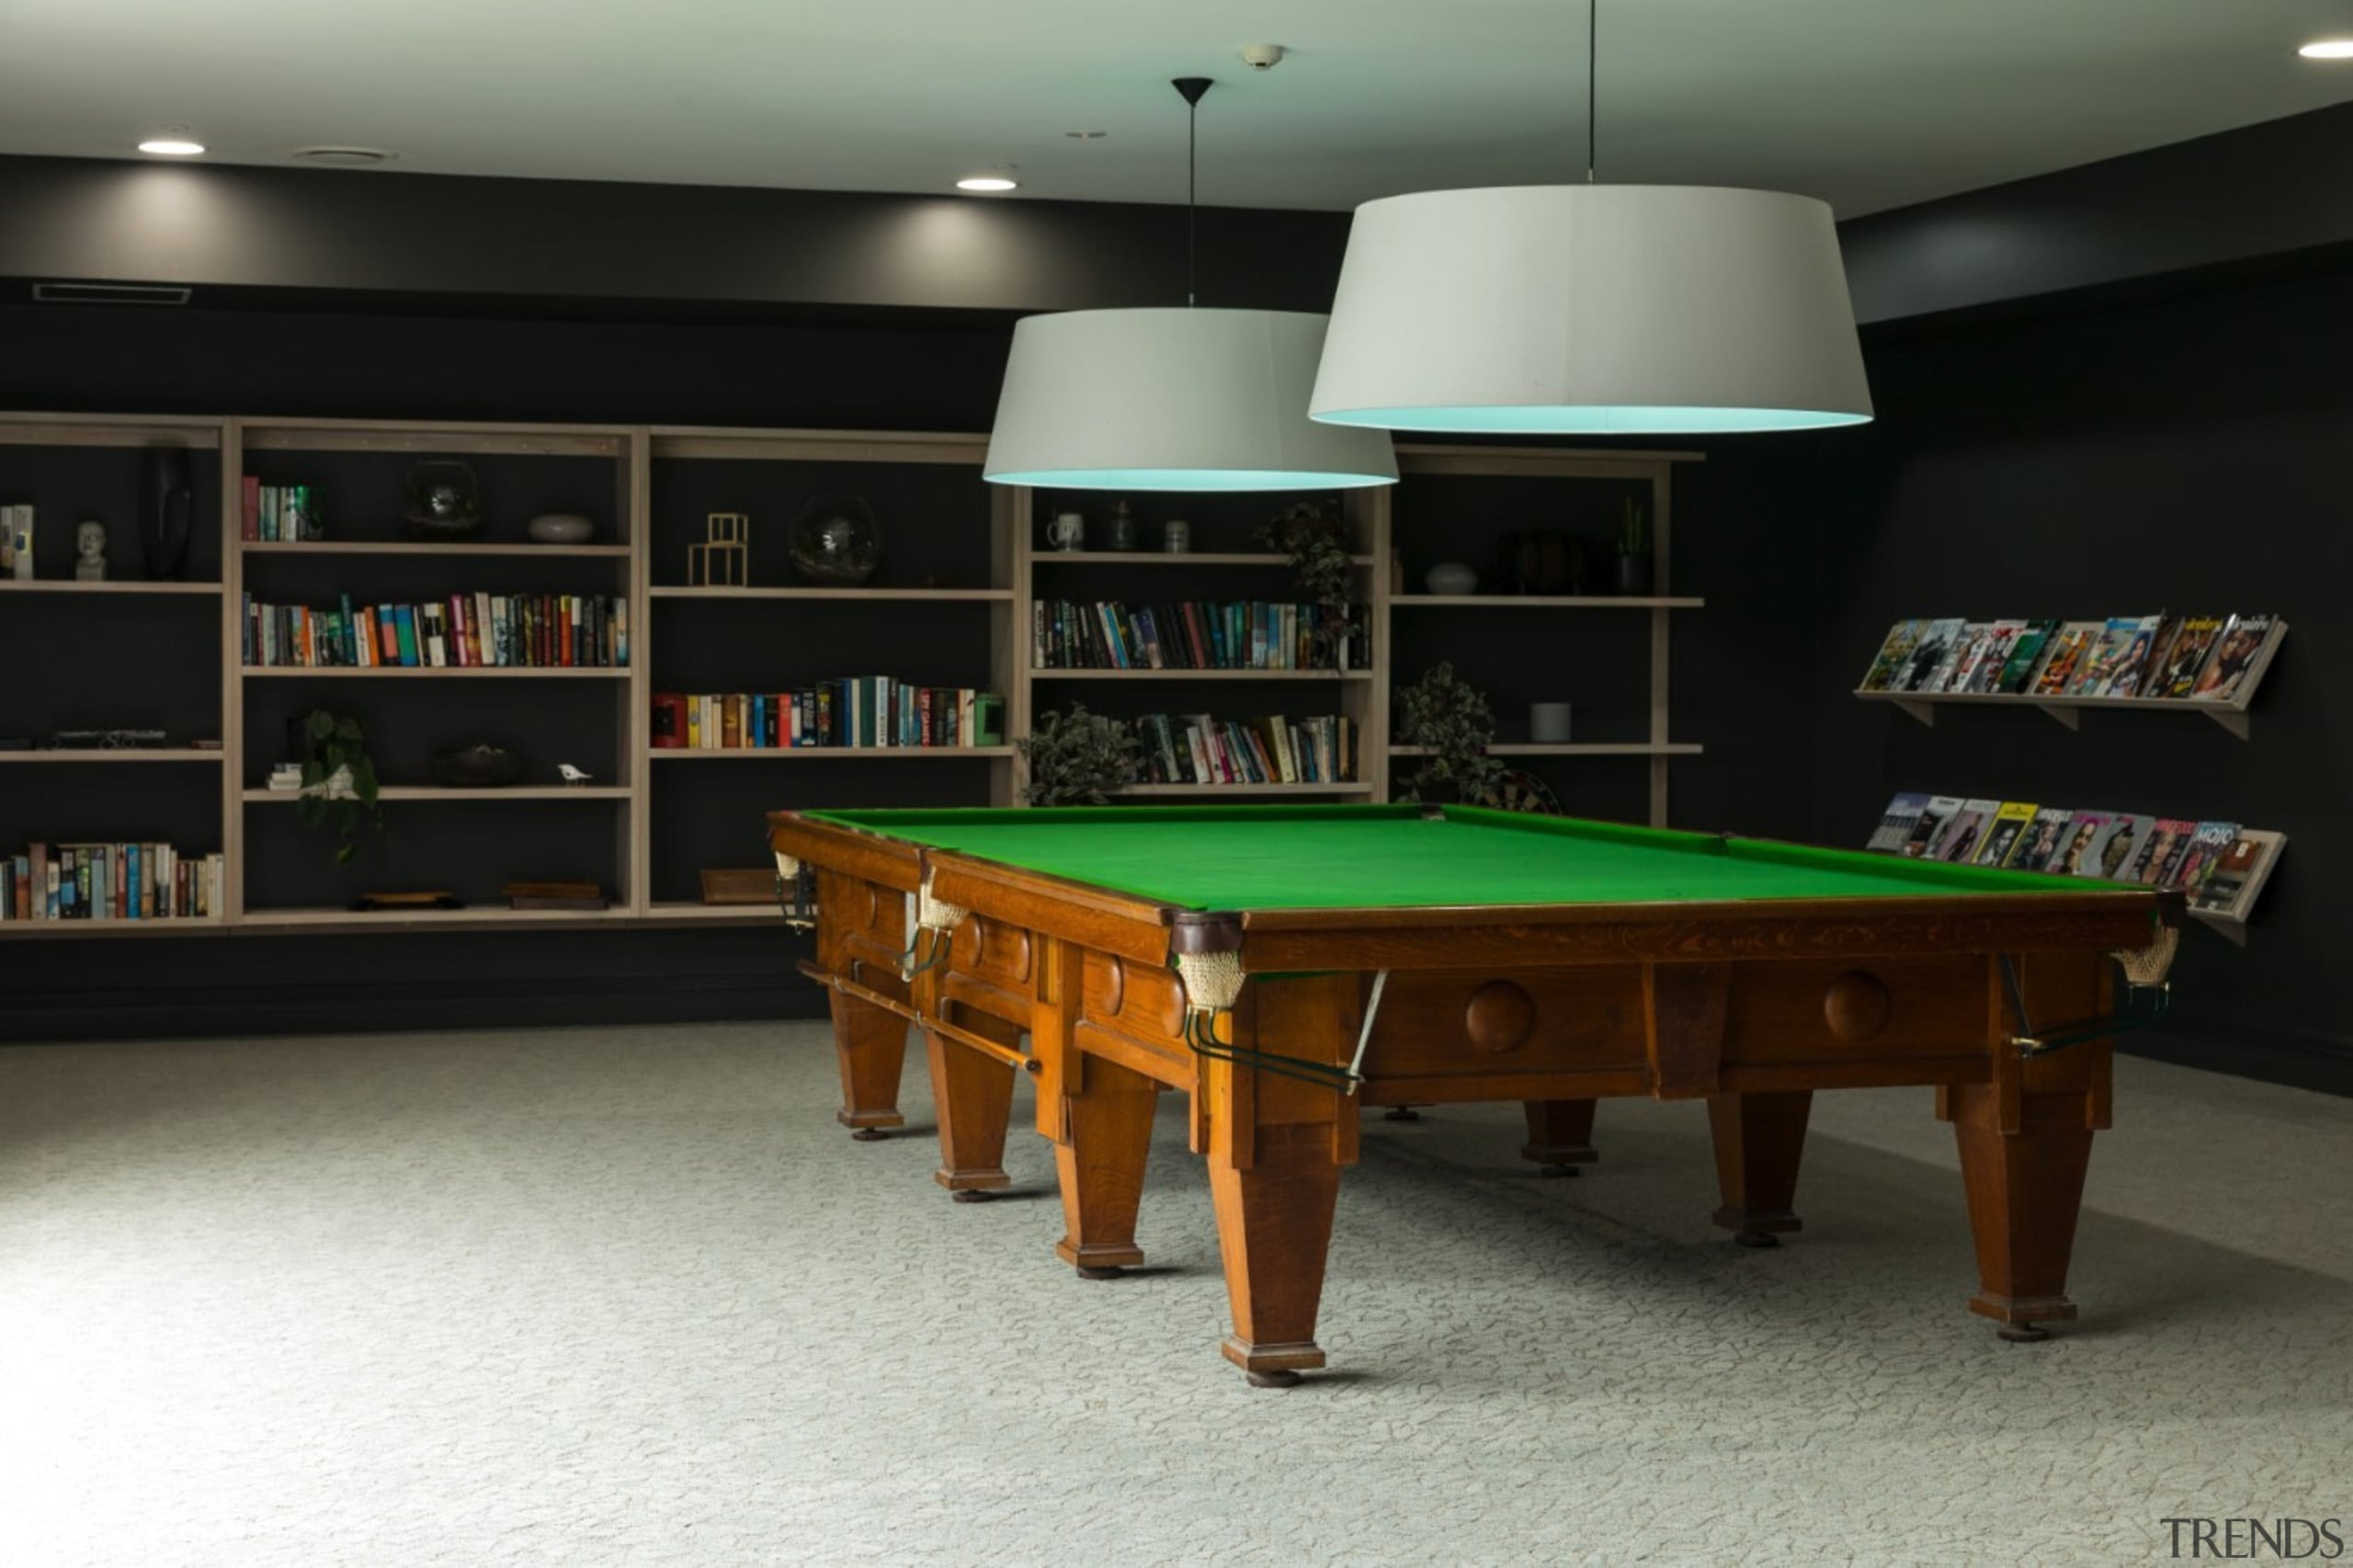 The TIDA NZ Architect-designed apartment winner – Paul billiard room, billiard table, cue sports, english billiards, furniture, games, indoor games and sports, interior design, pool, recreation room, room, table, black, gray